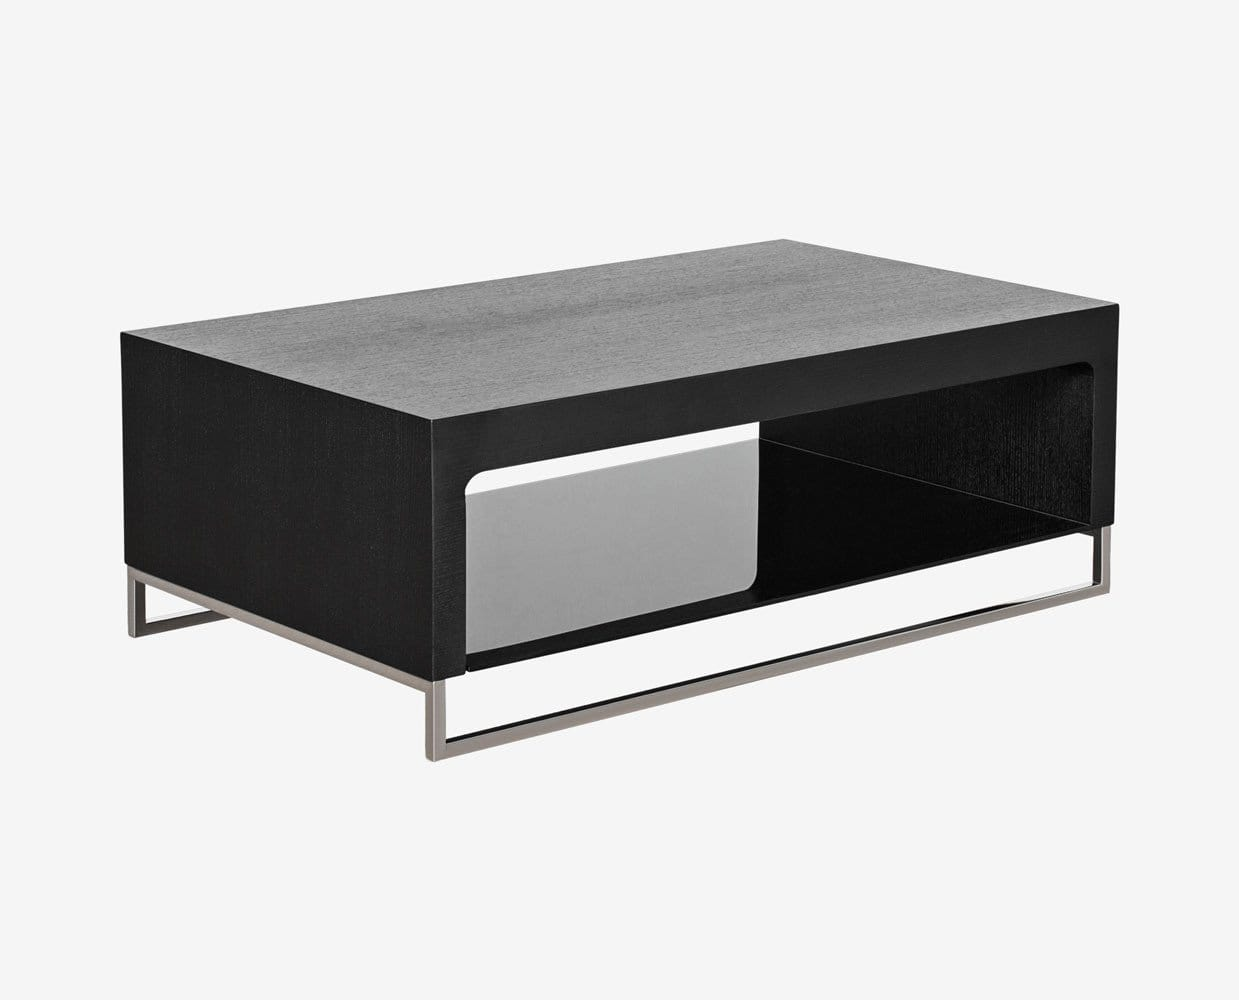 Sculptural display coffee table